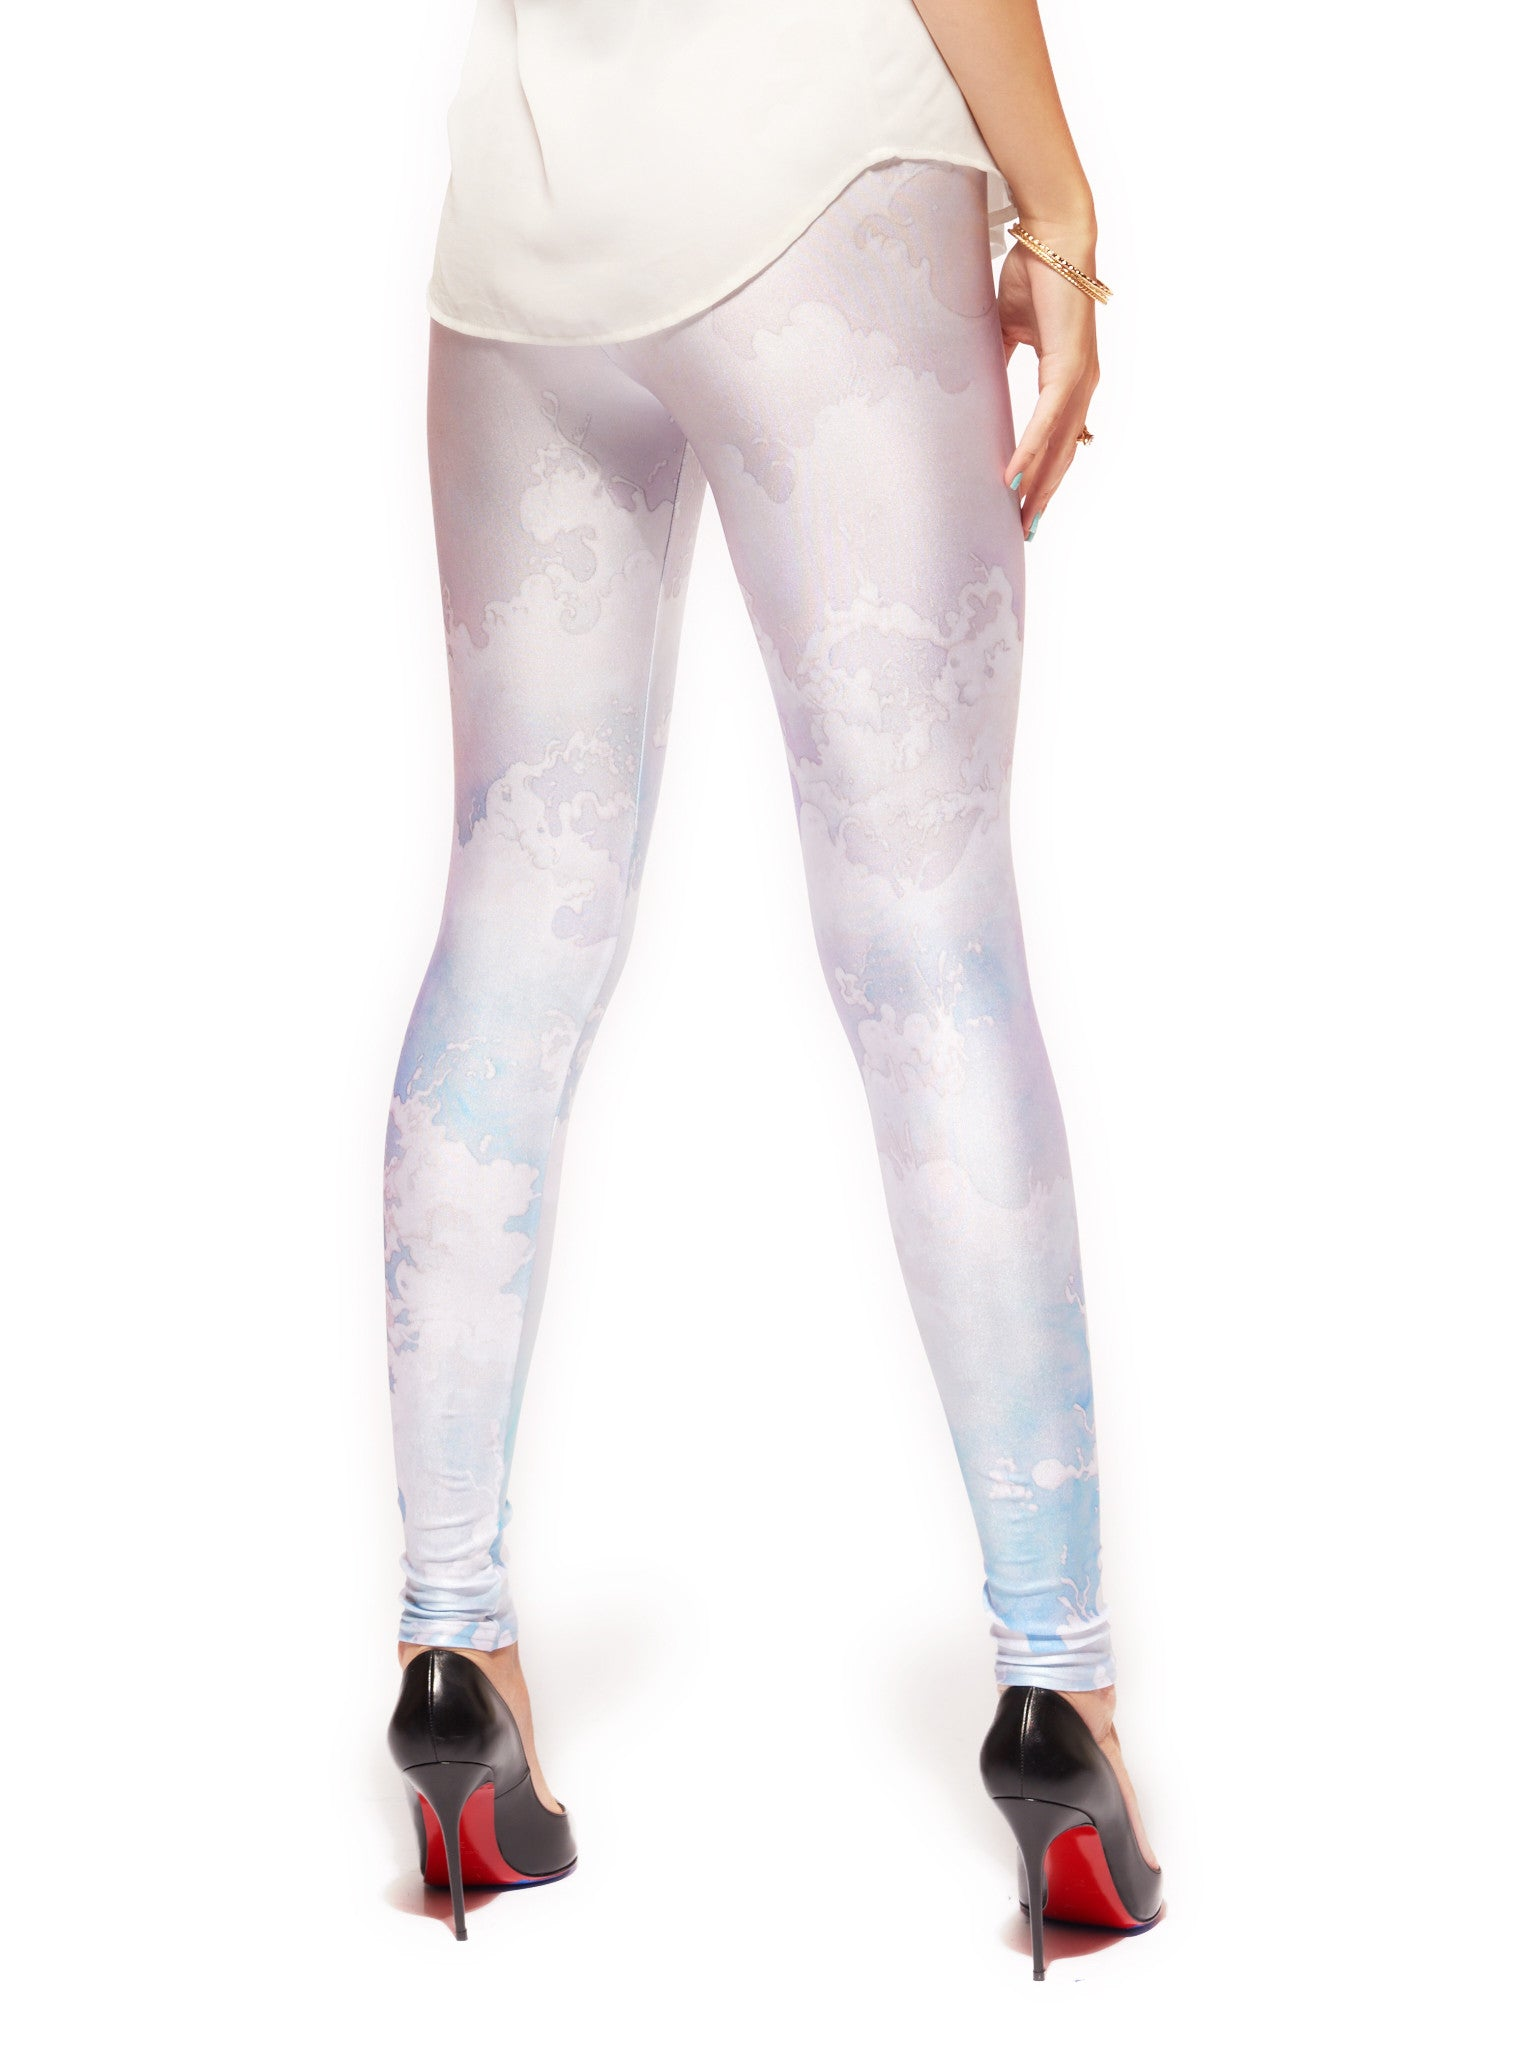 Tossed Queen West Leggings - Nuvango  - 3